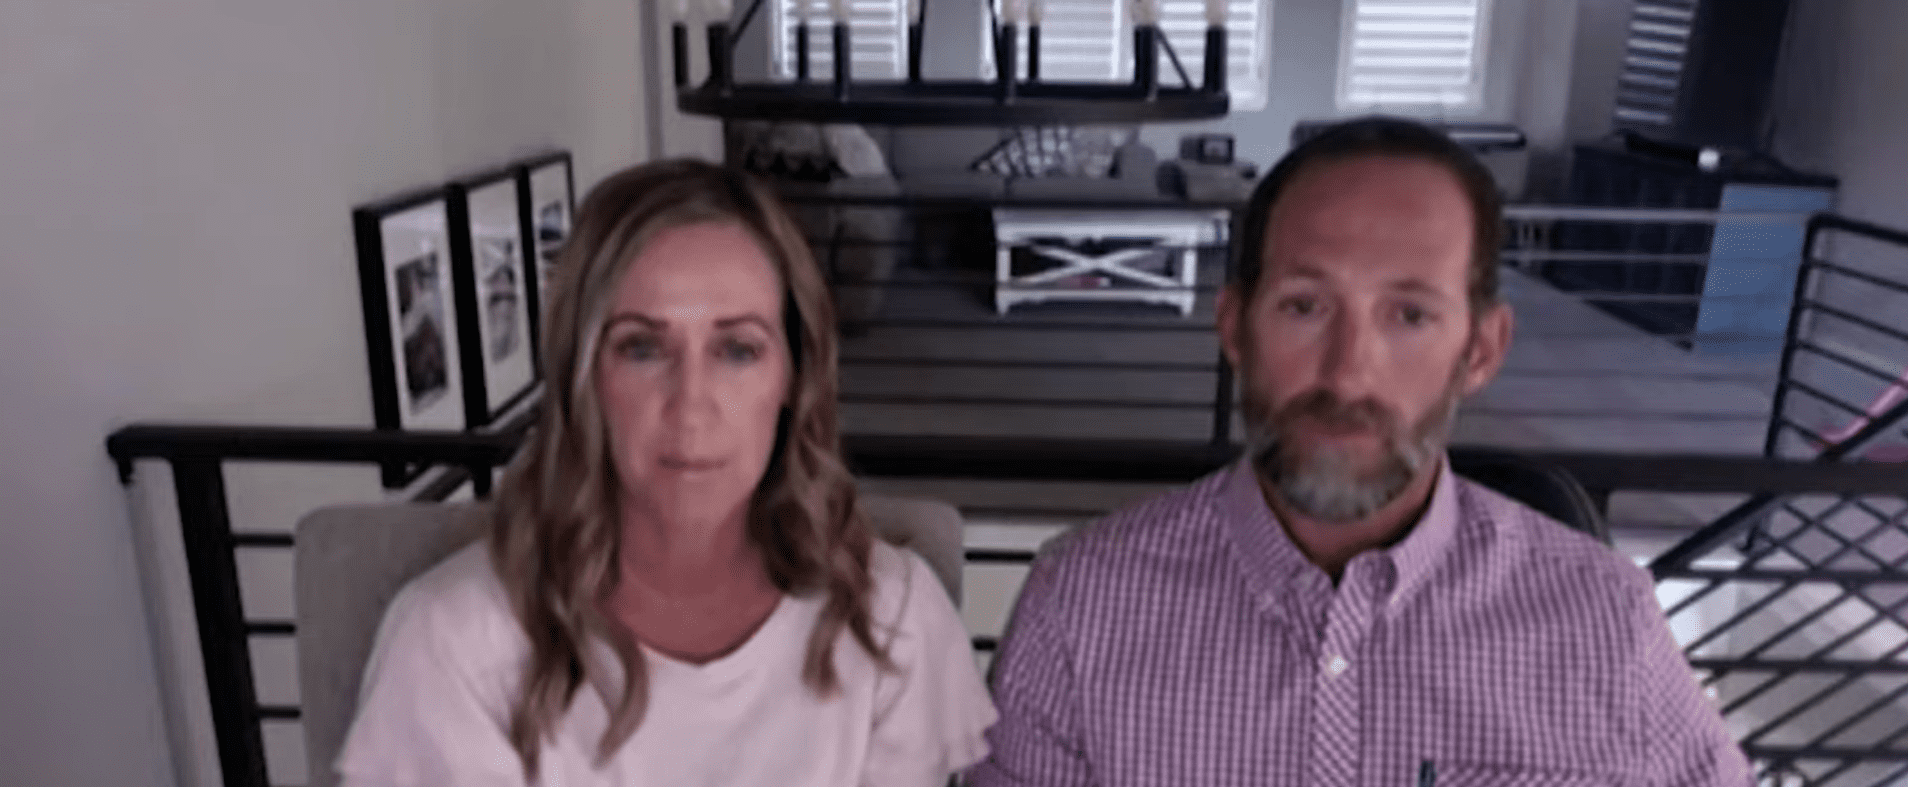 Kelly McNeil [left] and her husband Devin McNeil [right]. | Source: youtube.com/abc4utah